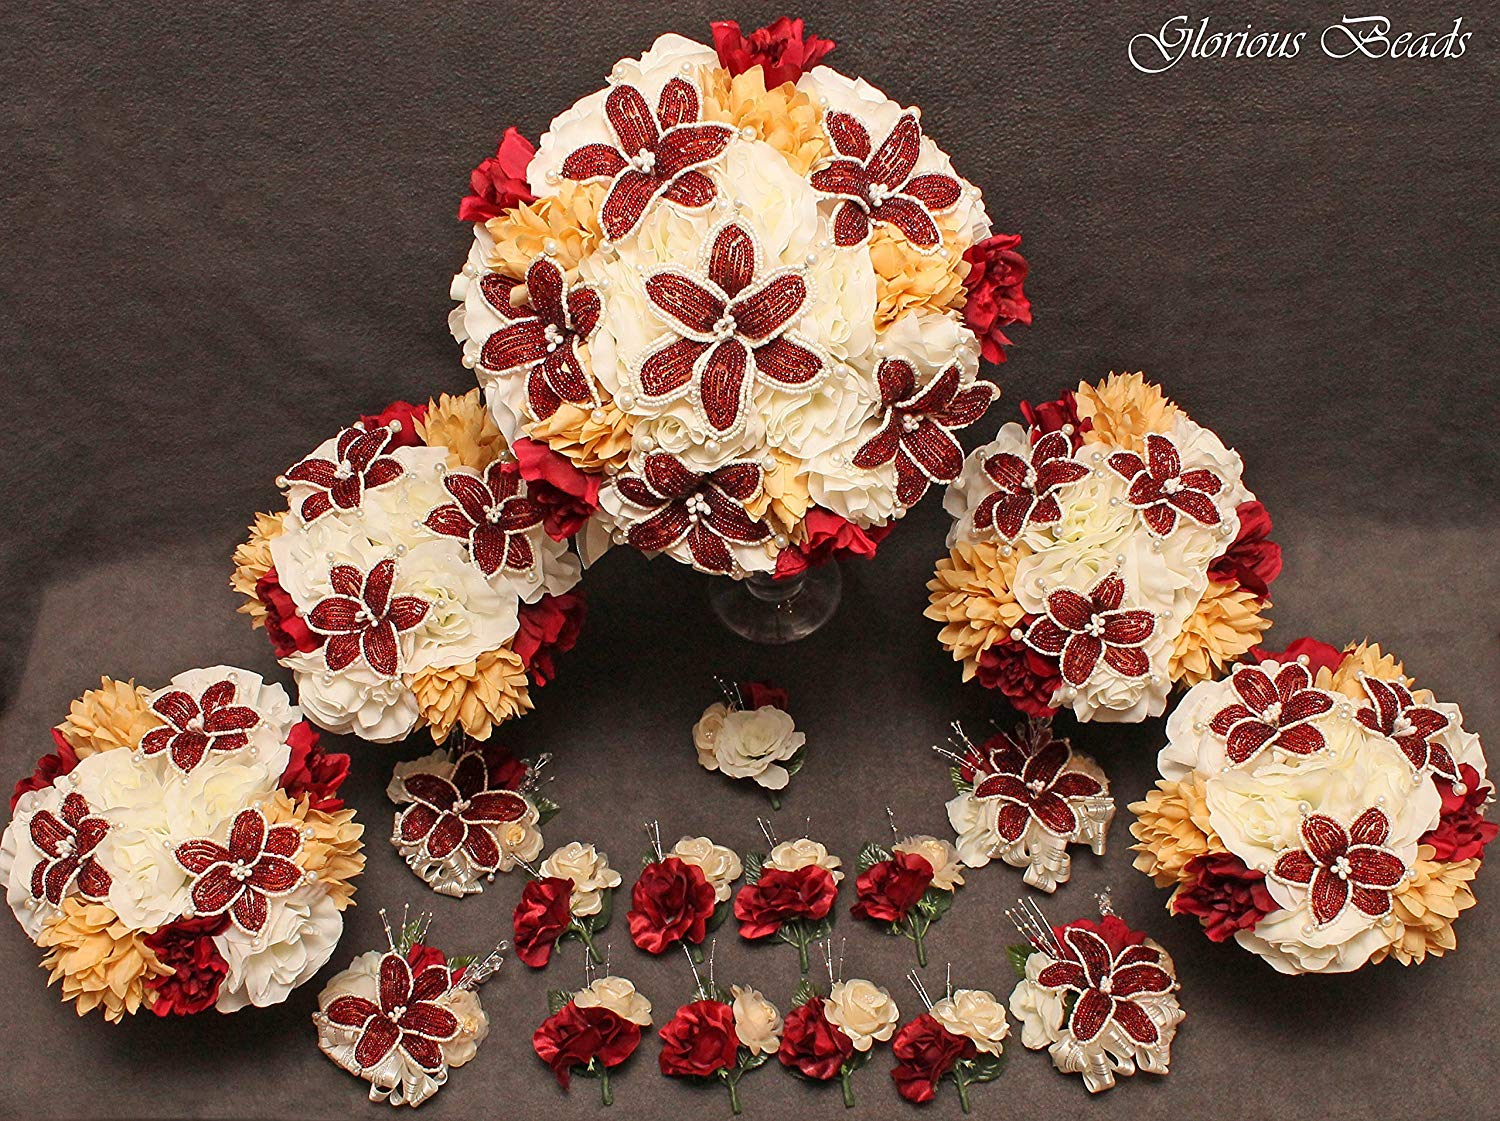 Wedding Flower BEADED Burgundy Red and Taupe Bridal 18 piece package ~ Unique French beaded Red Burgundy Ivory colored Lily flowers.